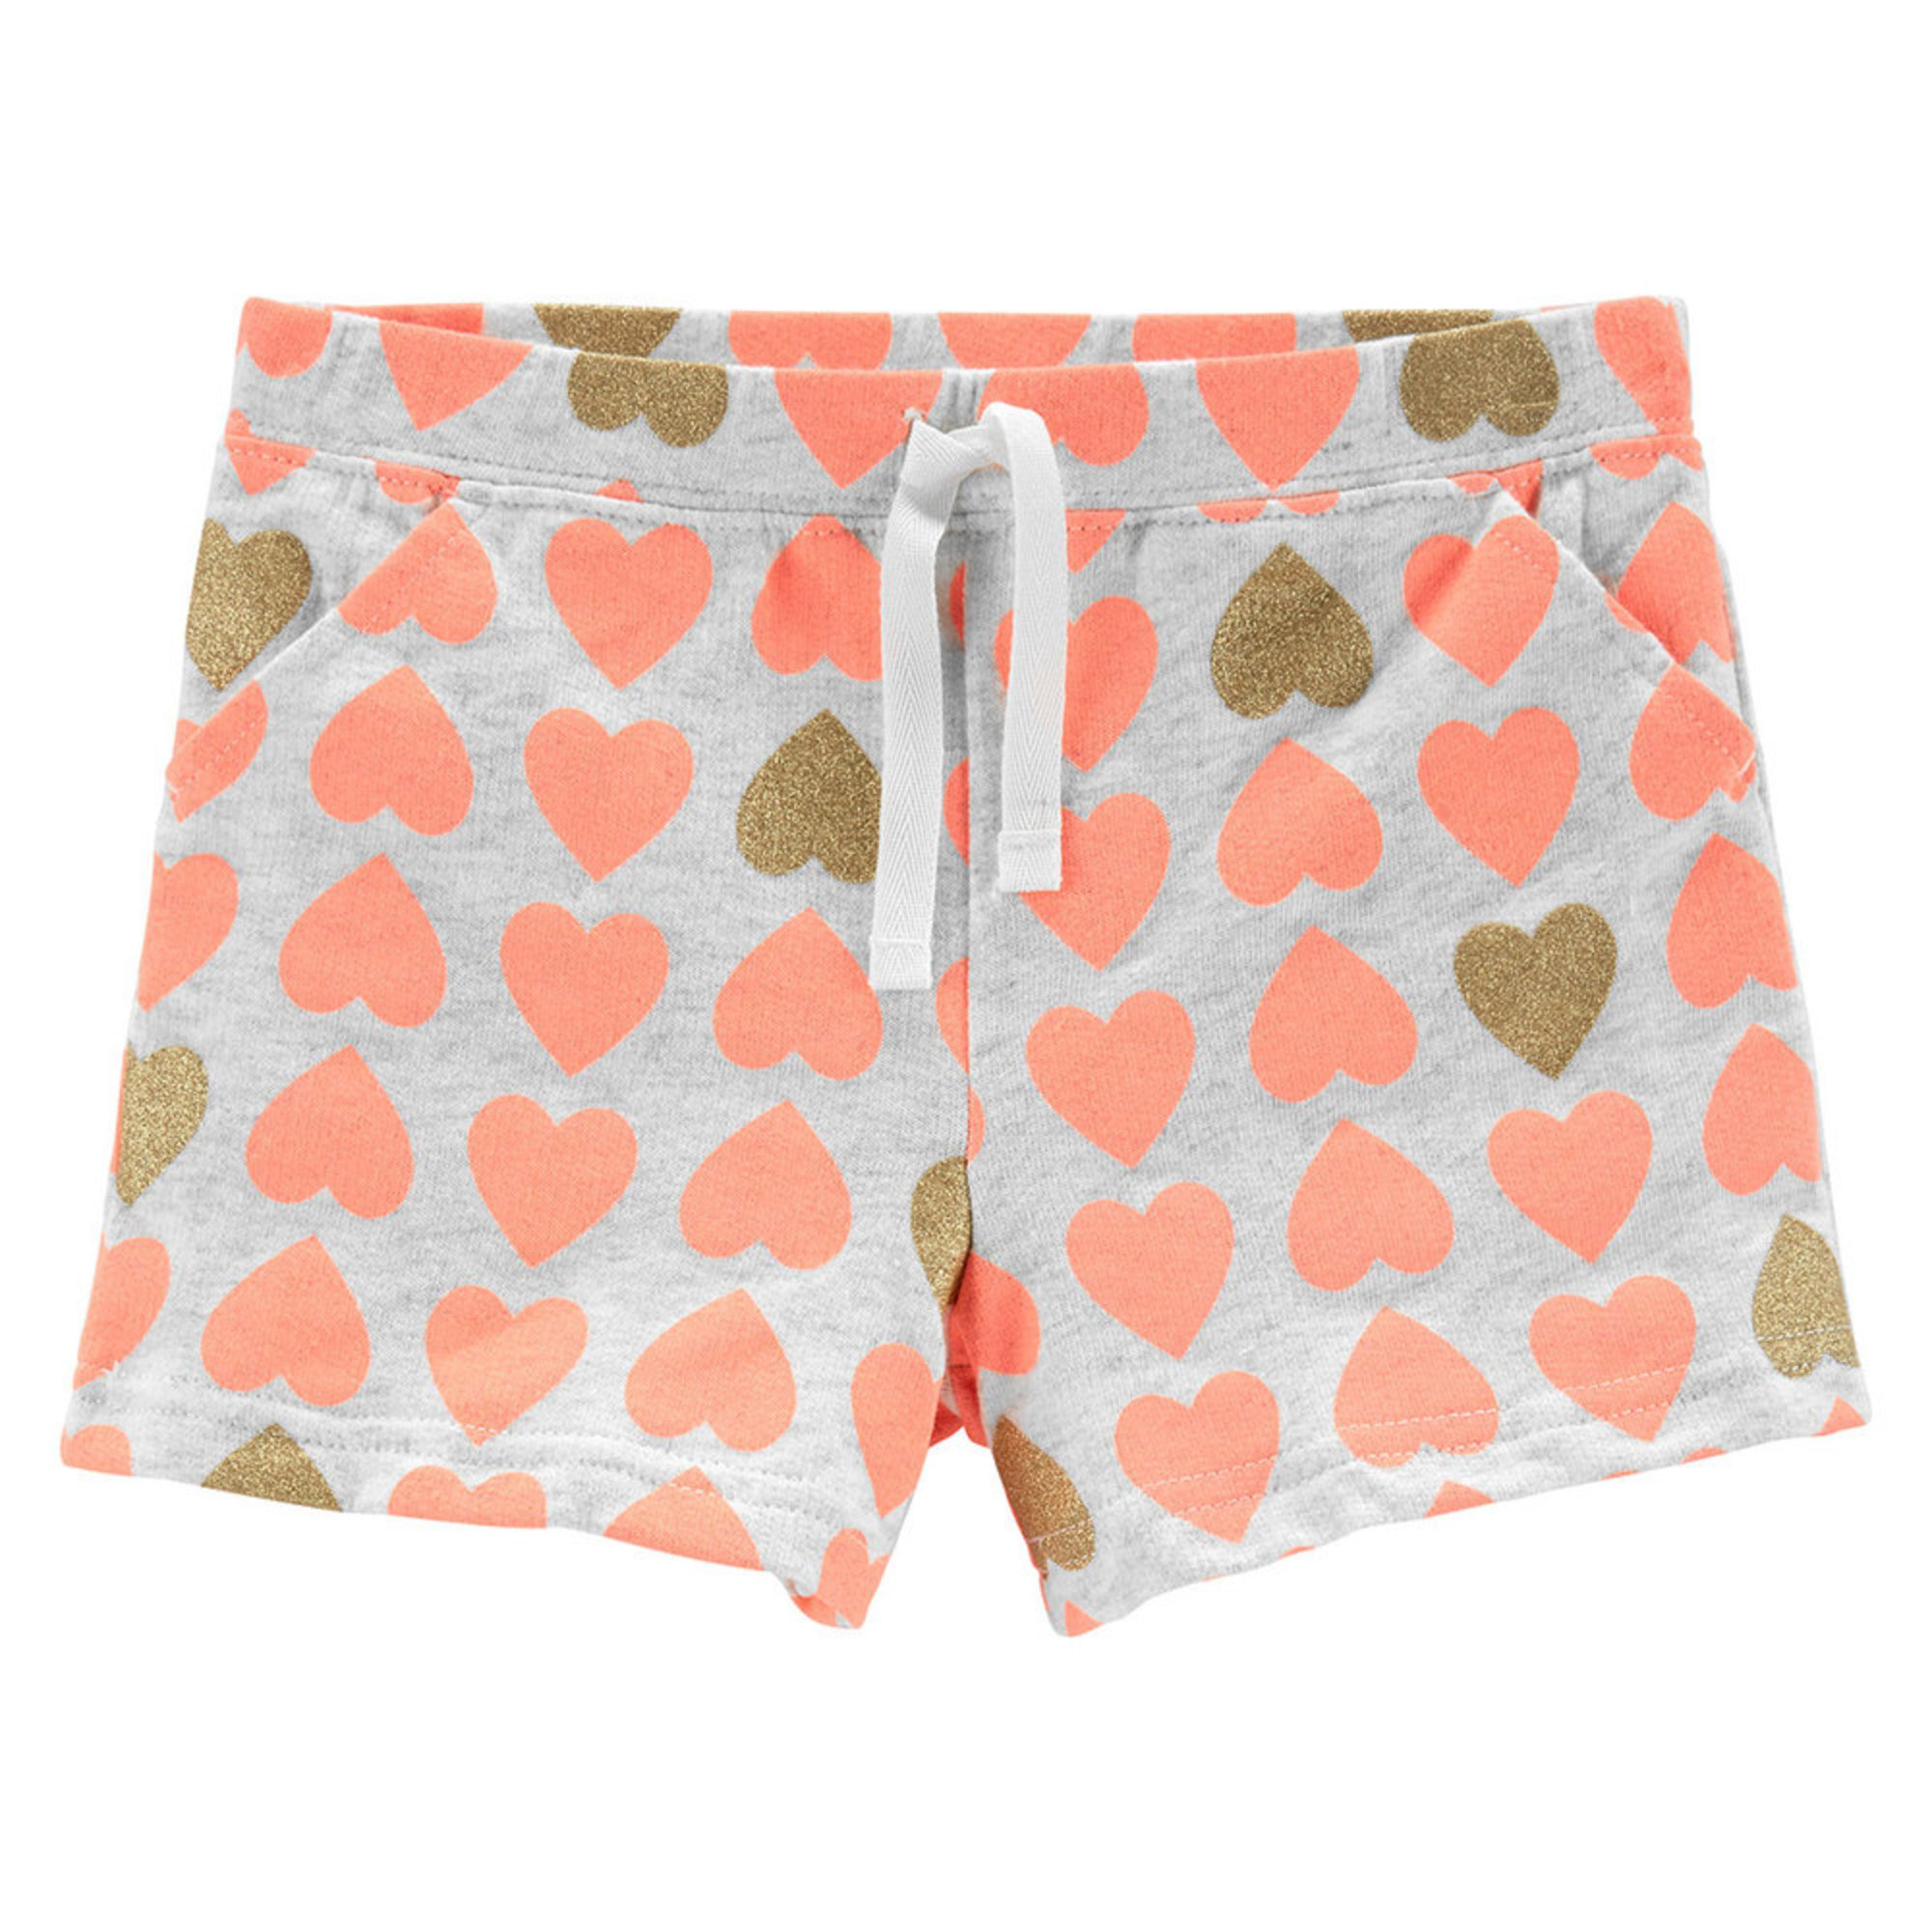 e7dbde06a8299 Carter's Toddler Girls' Heart Print Glitter Knit Shorts | Little ...